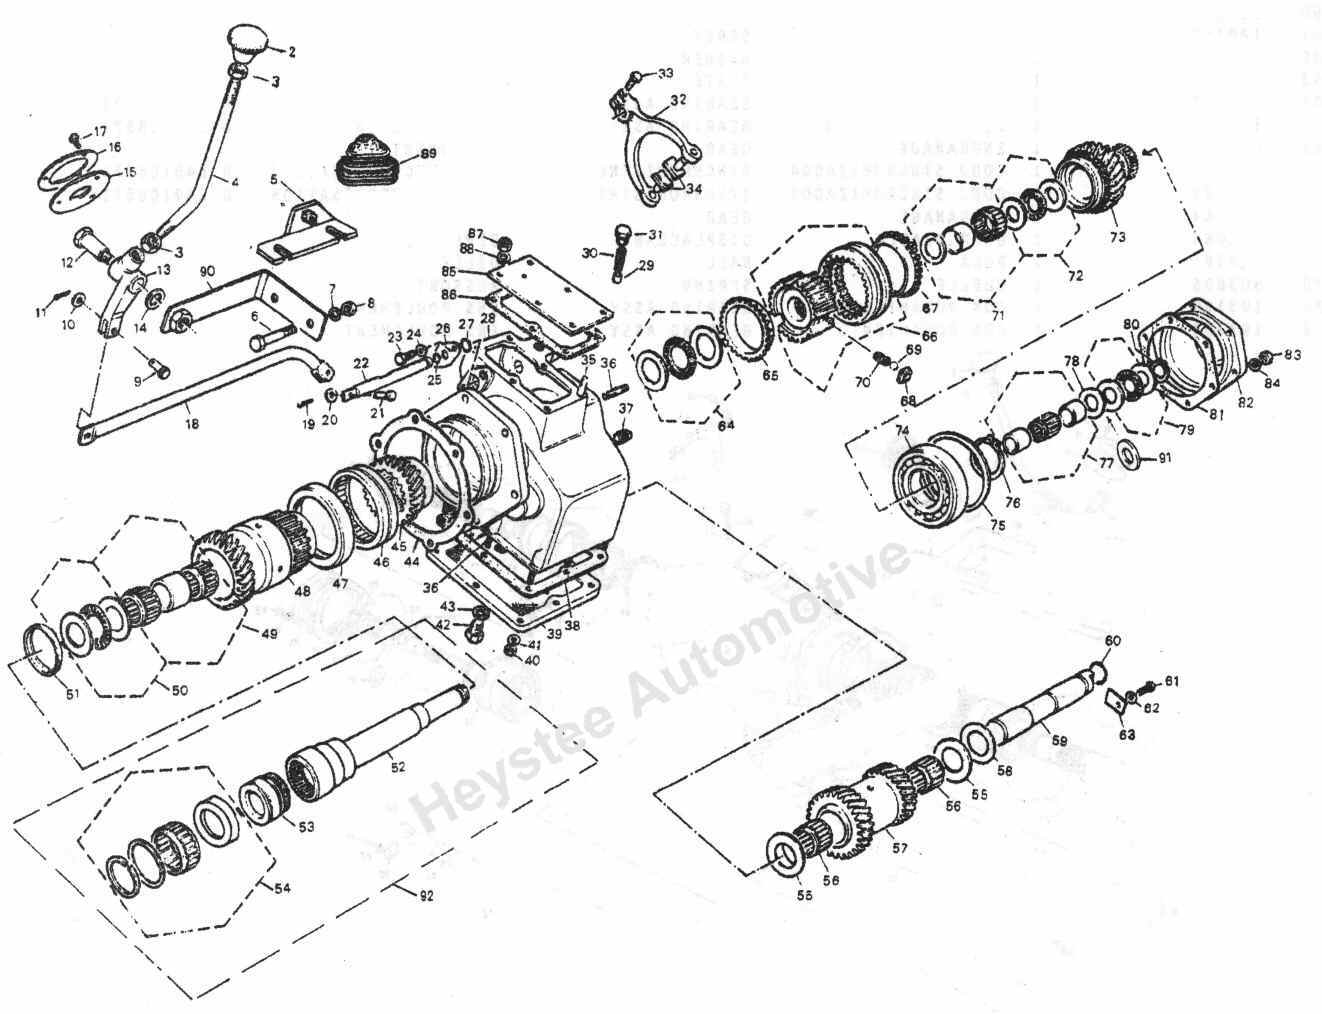 L322 Workshop Manual Auto Electrical Wiring Diagram Range Rover Td6 Service Exploded View 2005 Land Freelander